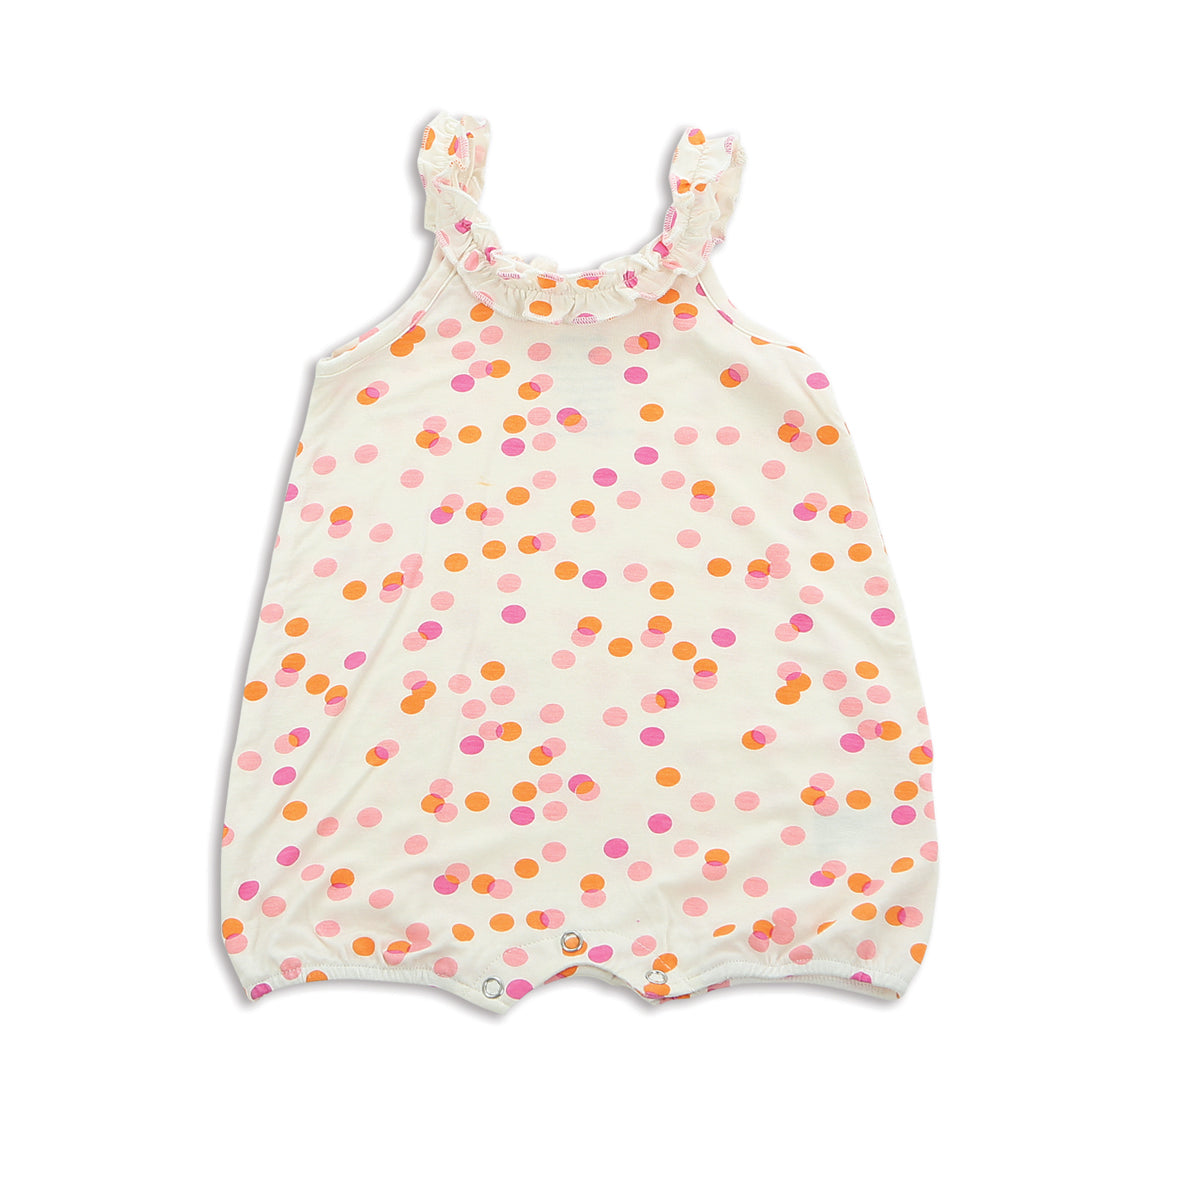 Silkberry Baby Confetti Sprinkle Baby romper